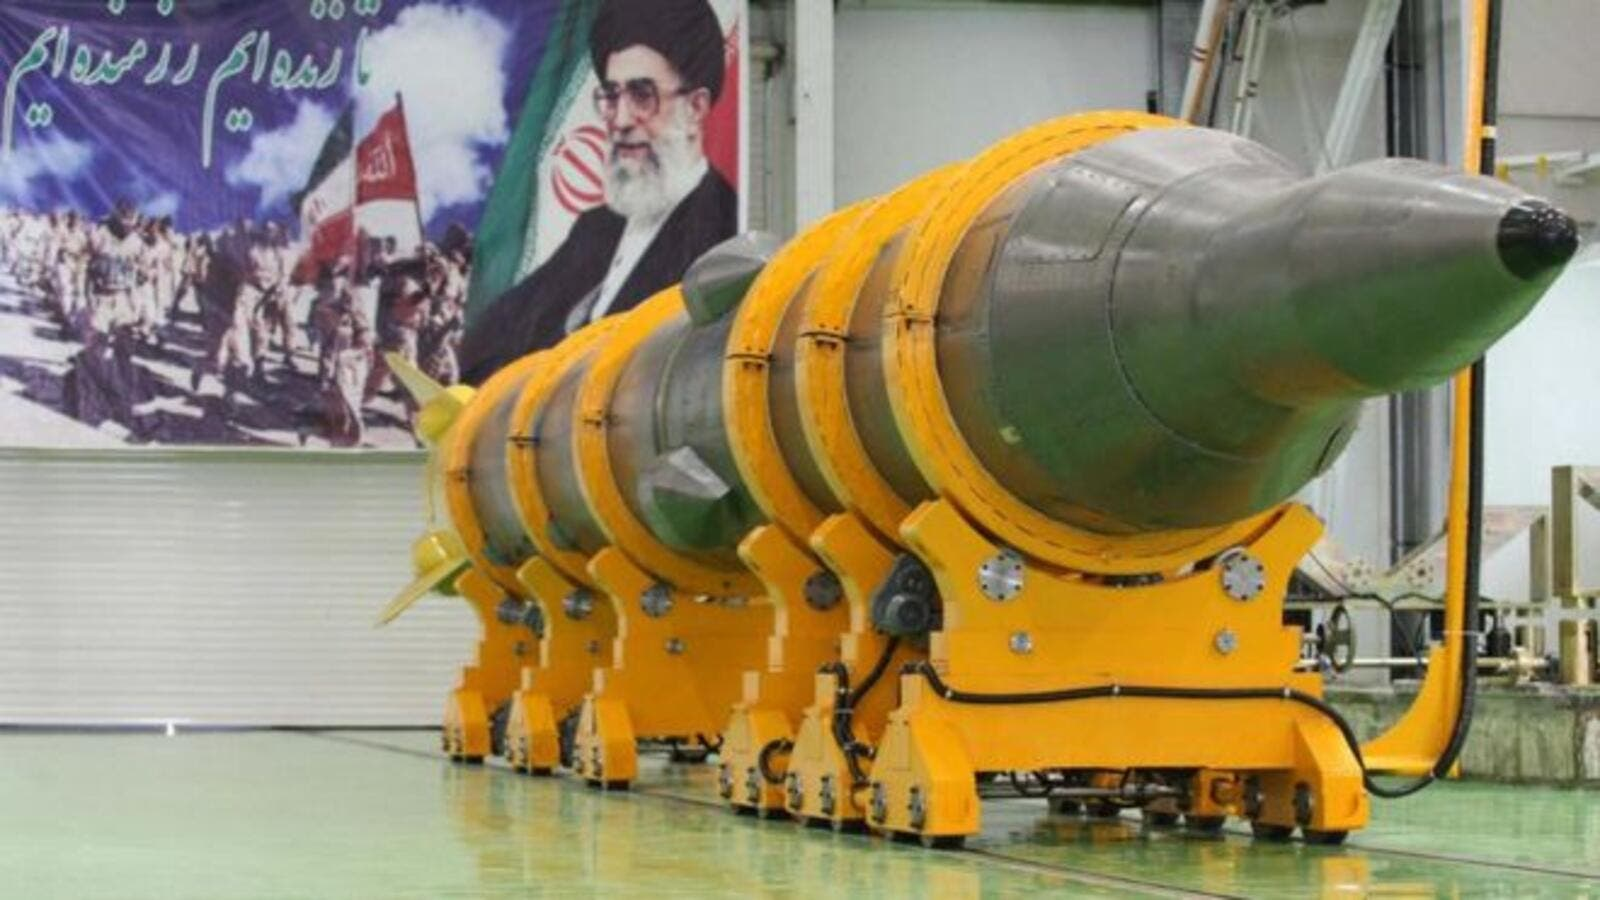 Iran has carried out several missile tests since the 2015 nuclear deal. (AFP/File)